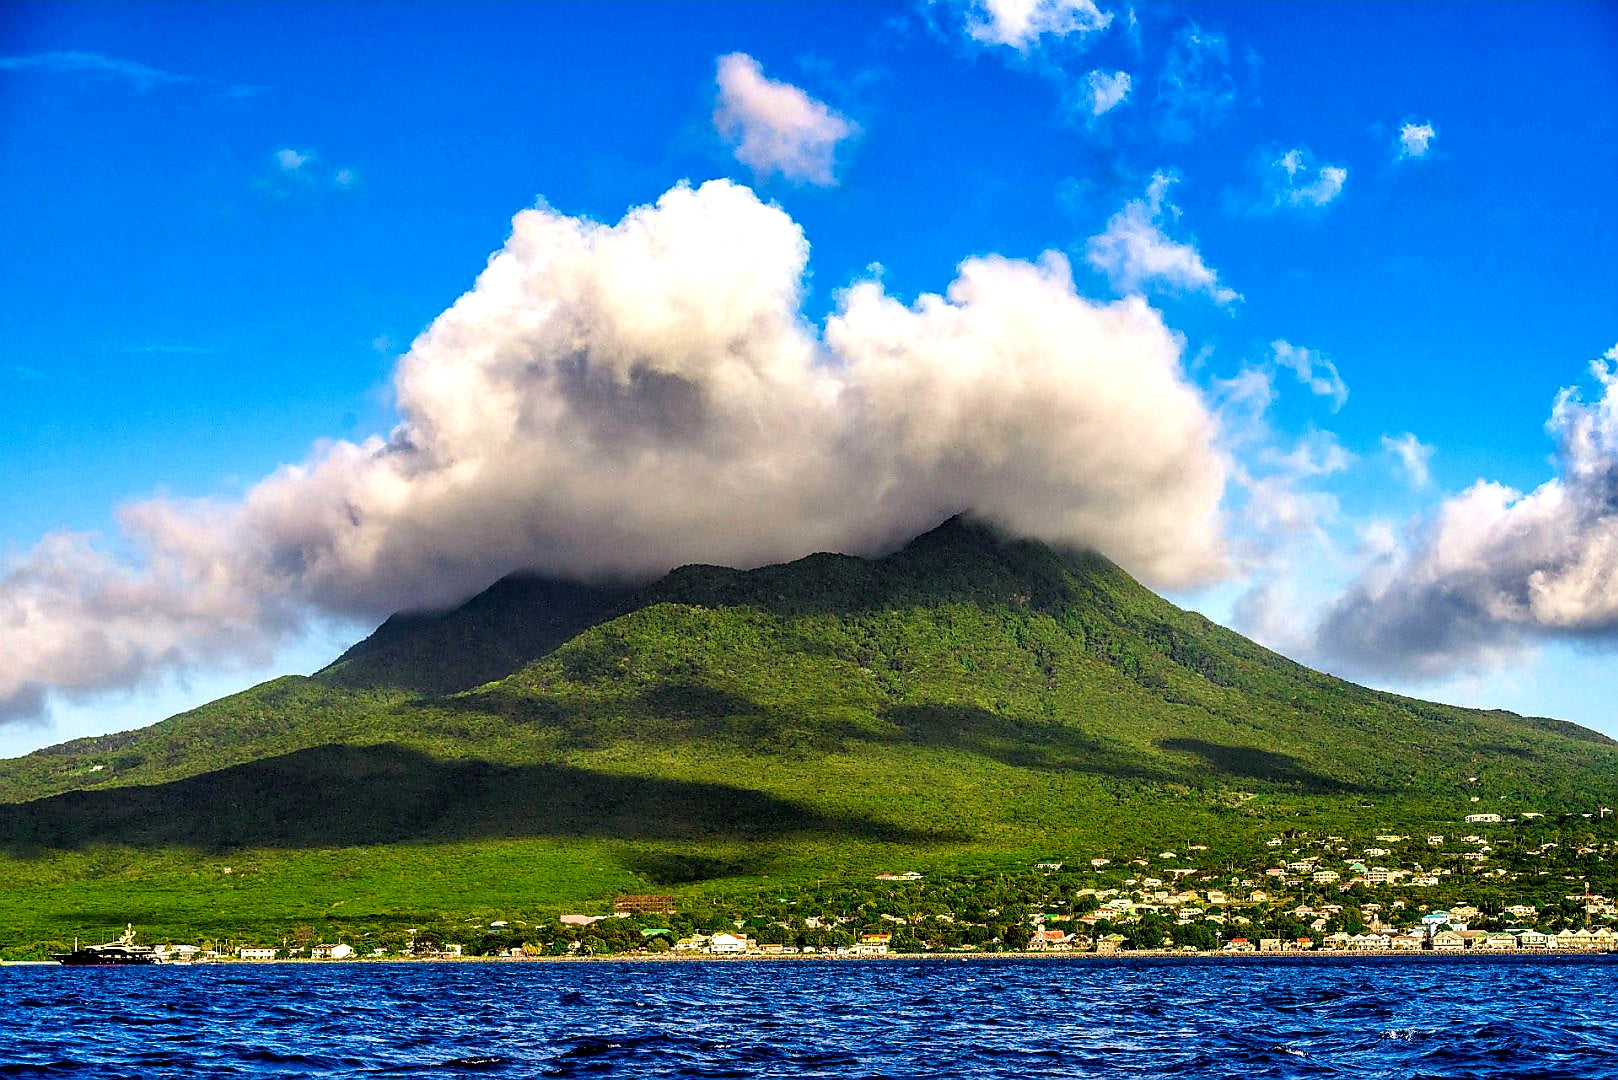 Australian Cricket Tours - Nevis Peak Shrouded In Cloud